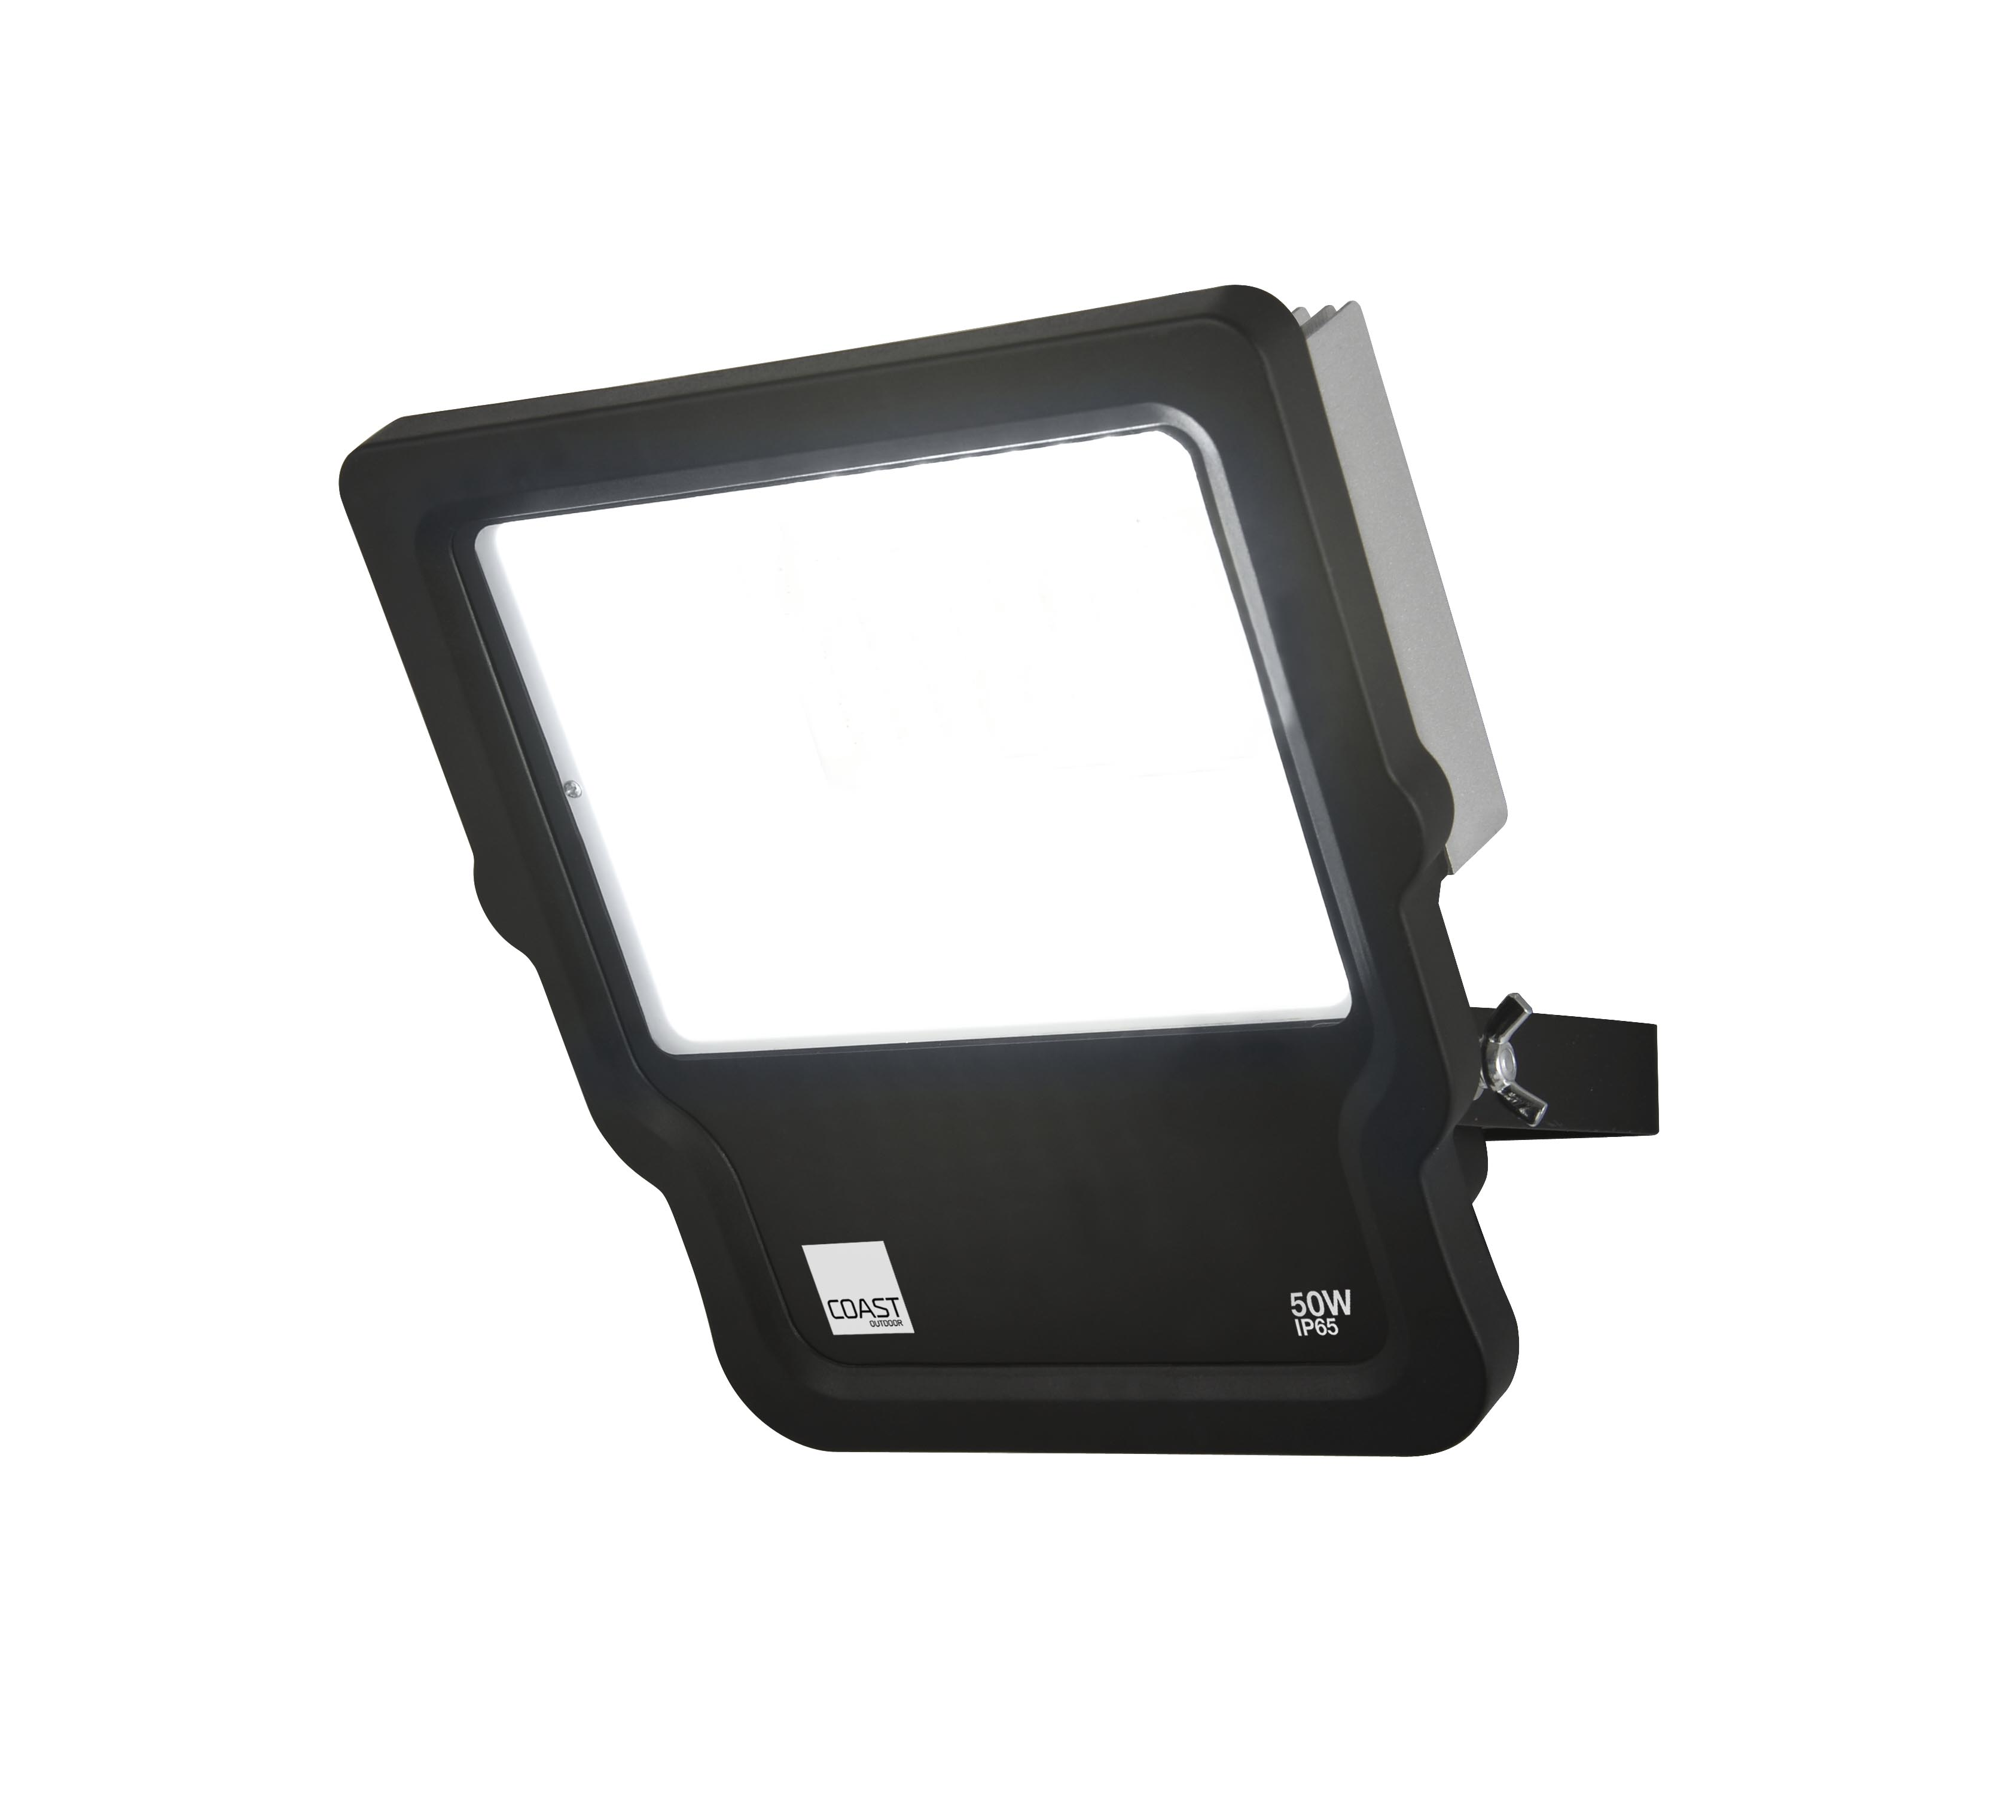 Storm Anti-Corrosion LED Floodlight 50W CZ-29202-BL